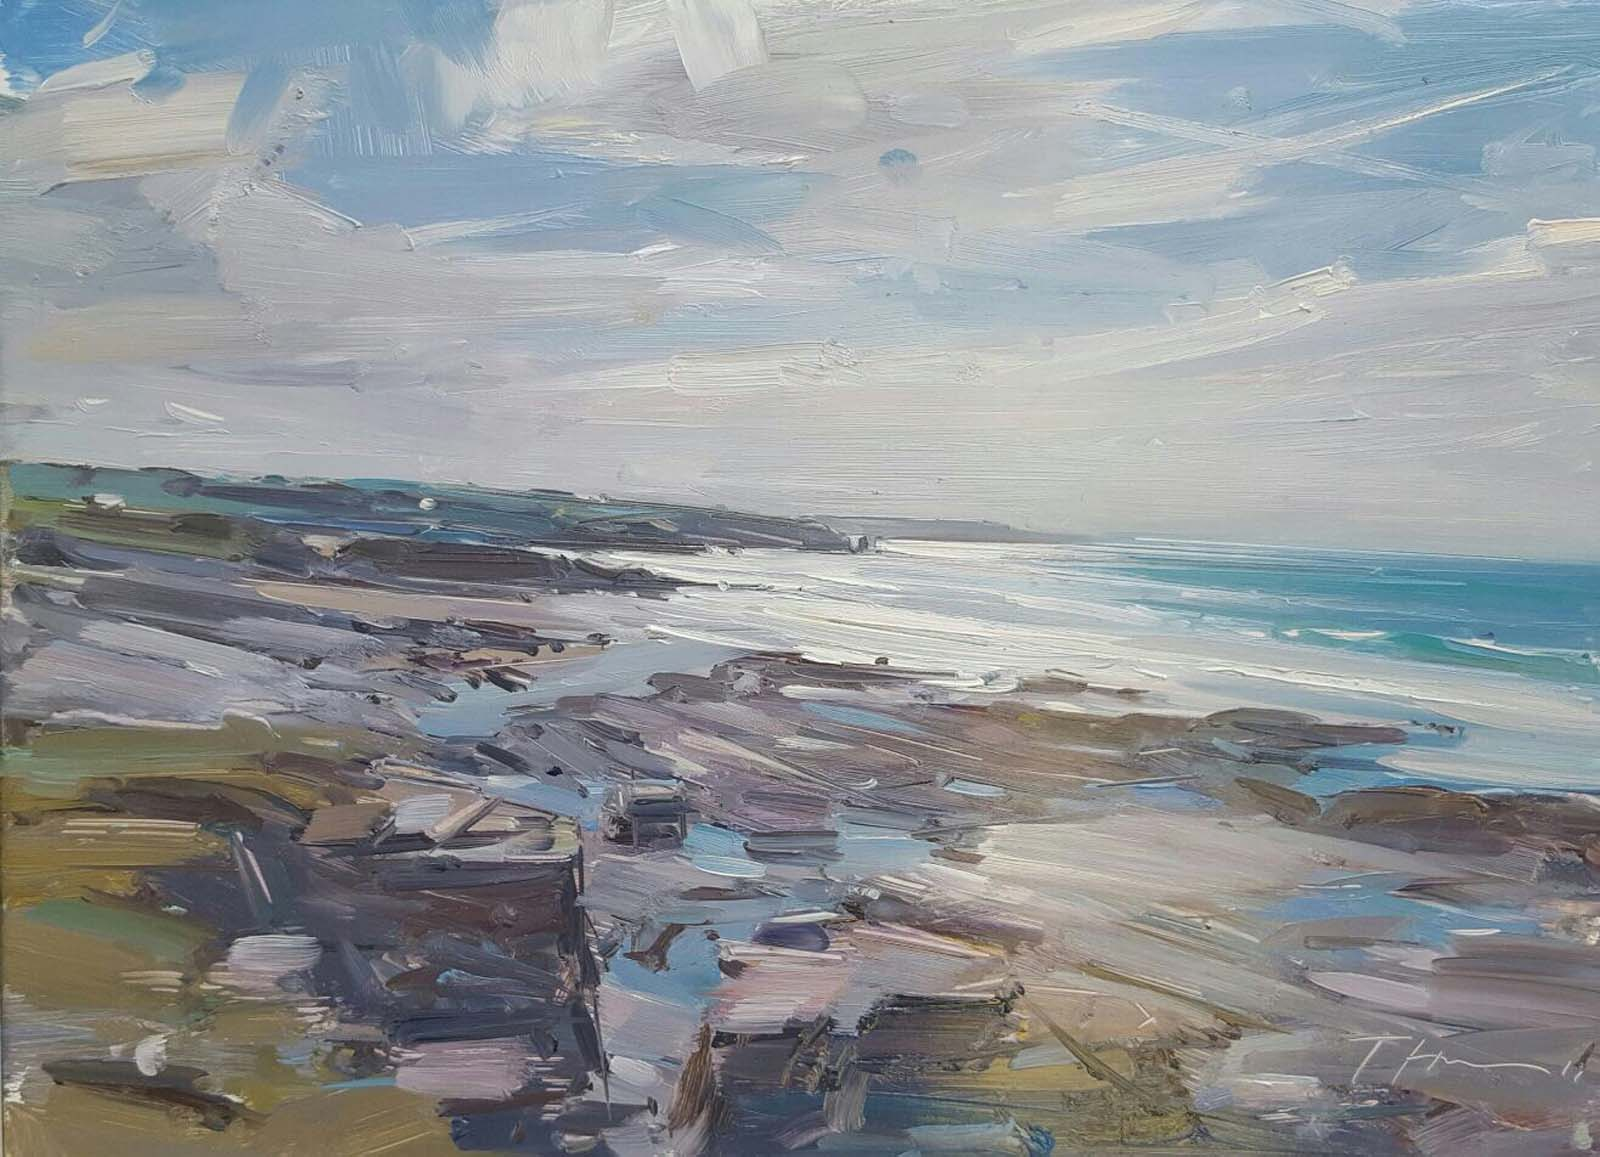 Towards Constantine Bay, Mid Afternoon Light